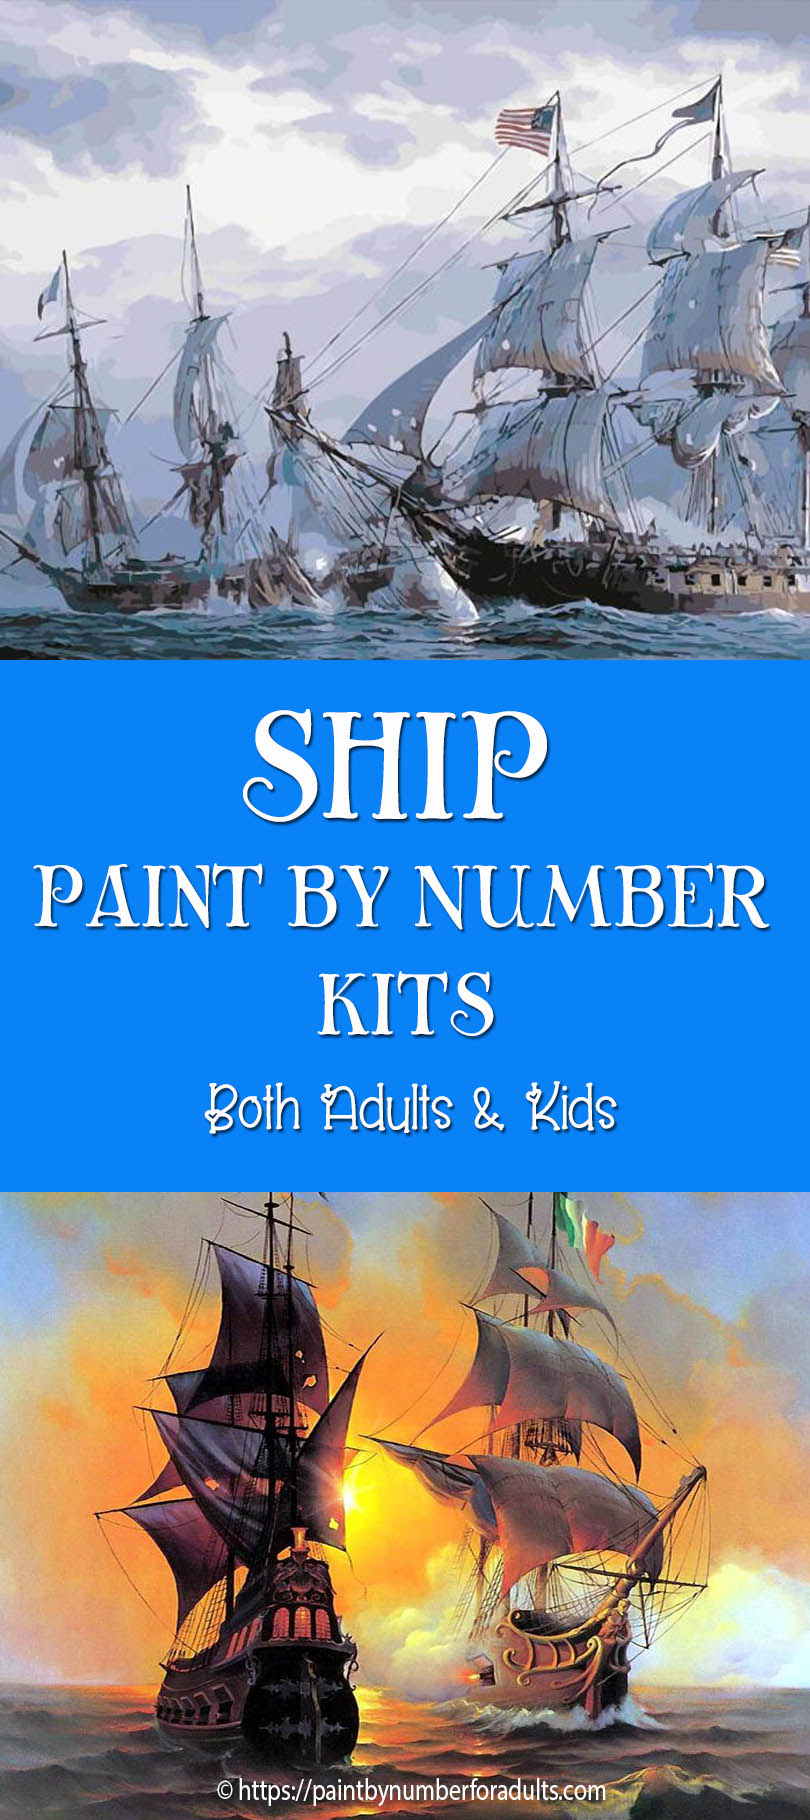 Ship Paint by Number kits